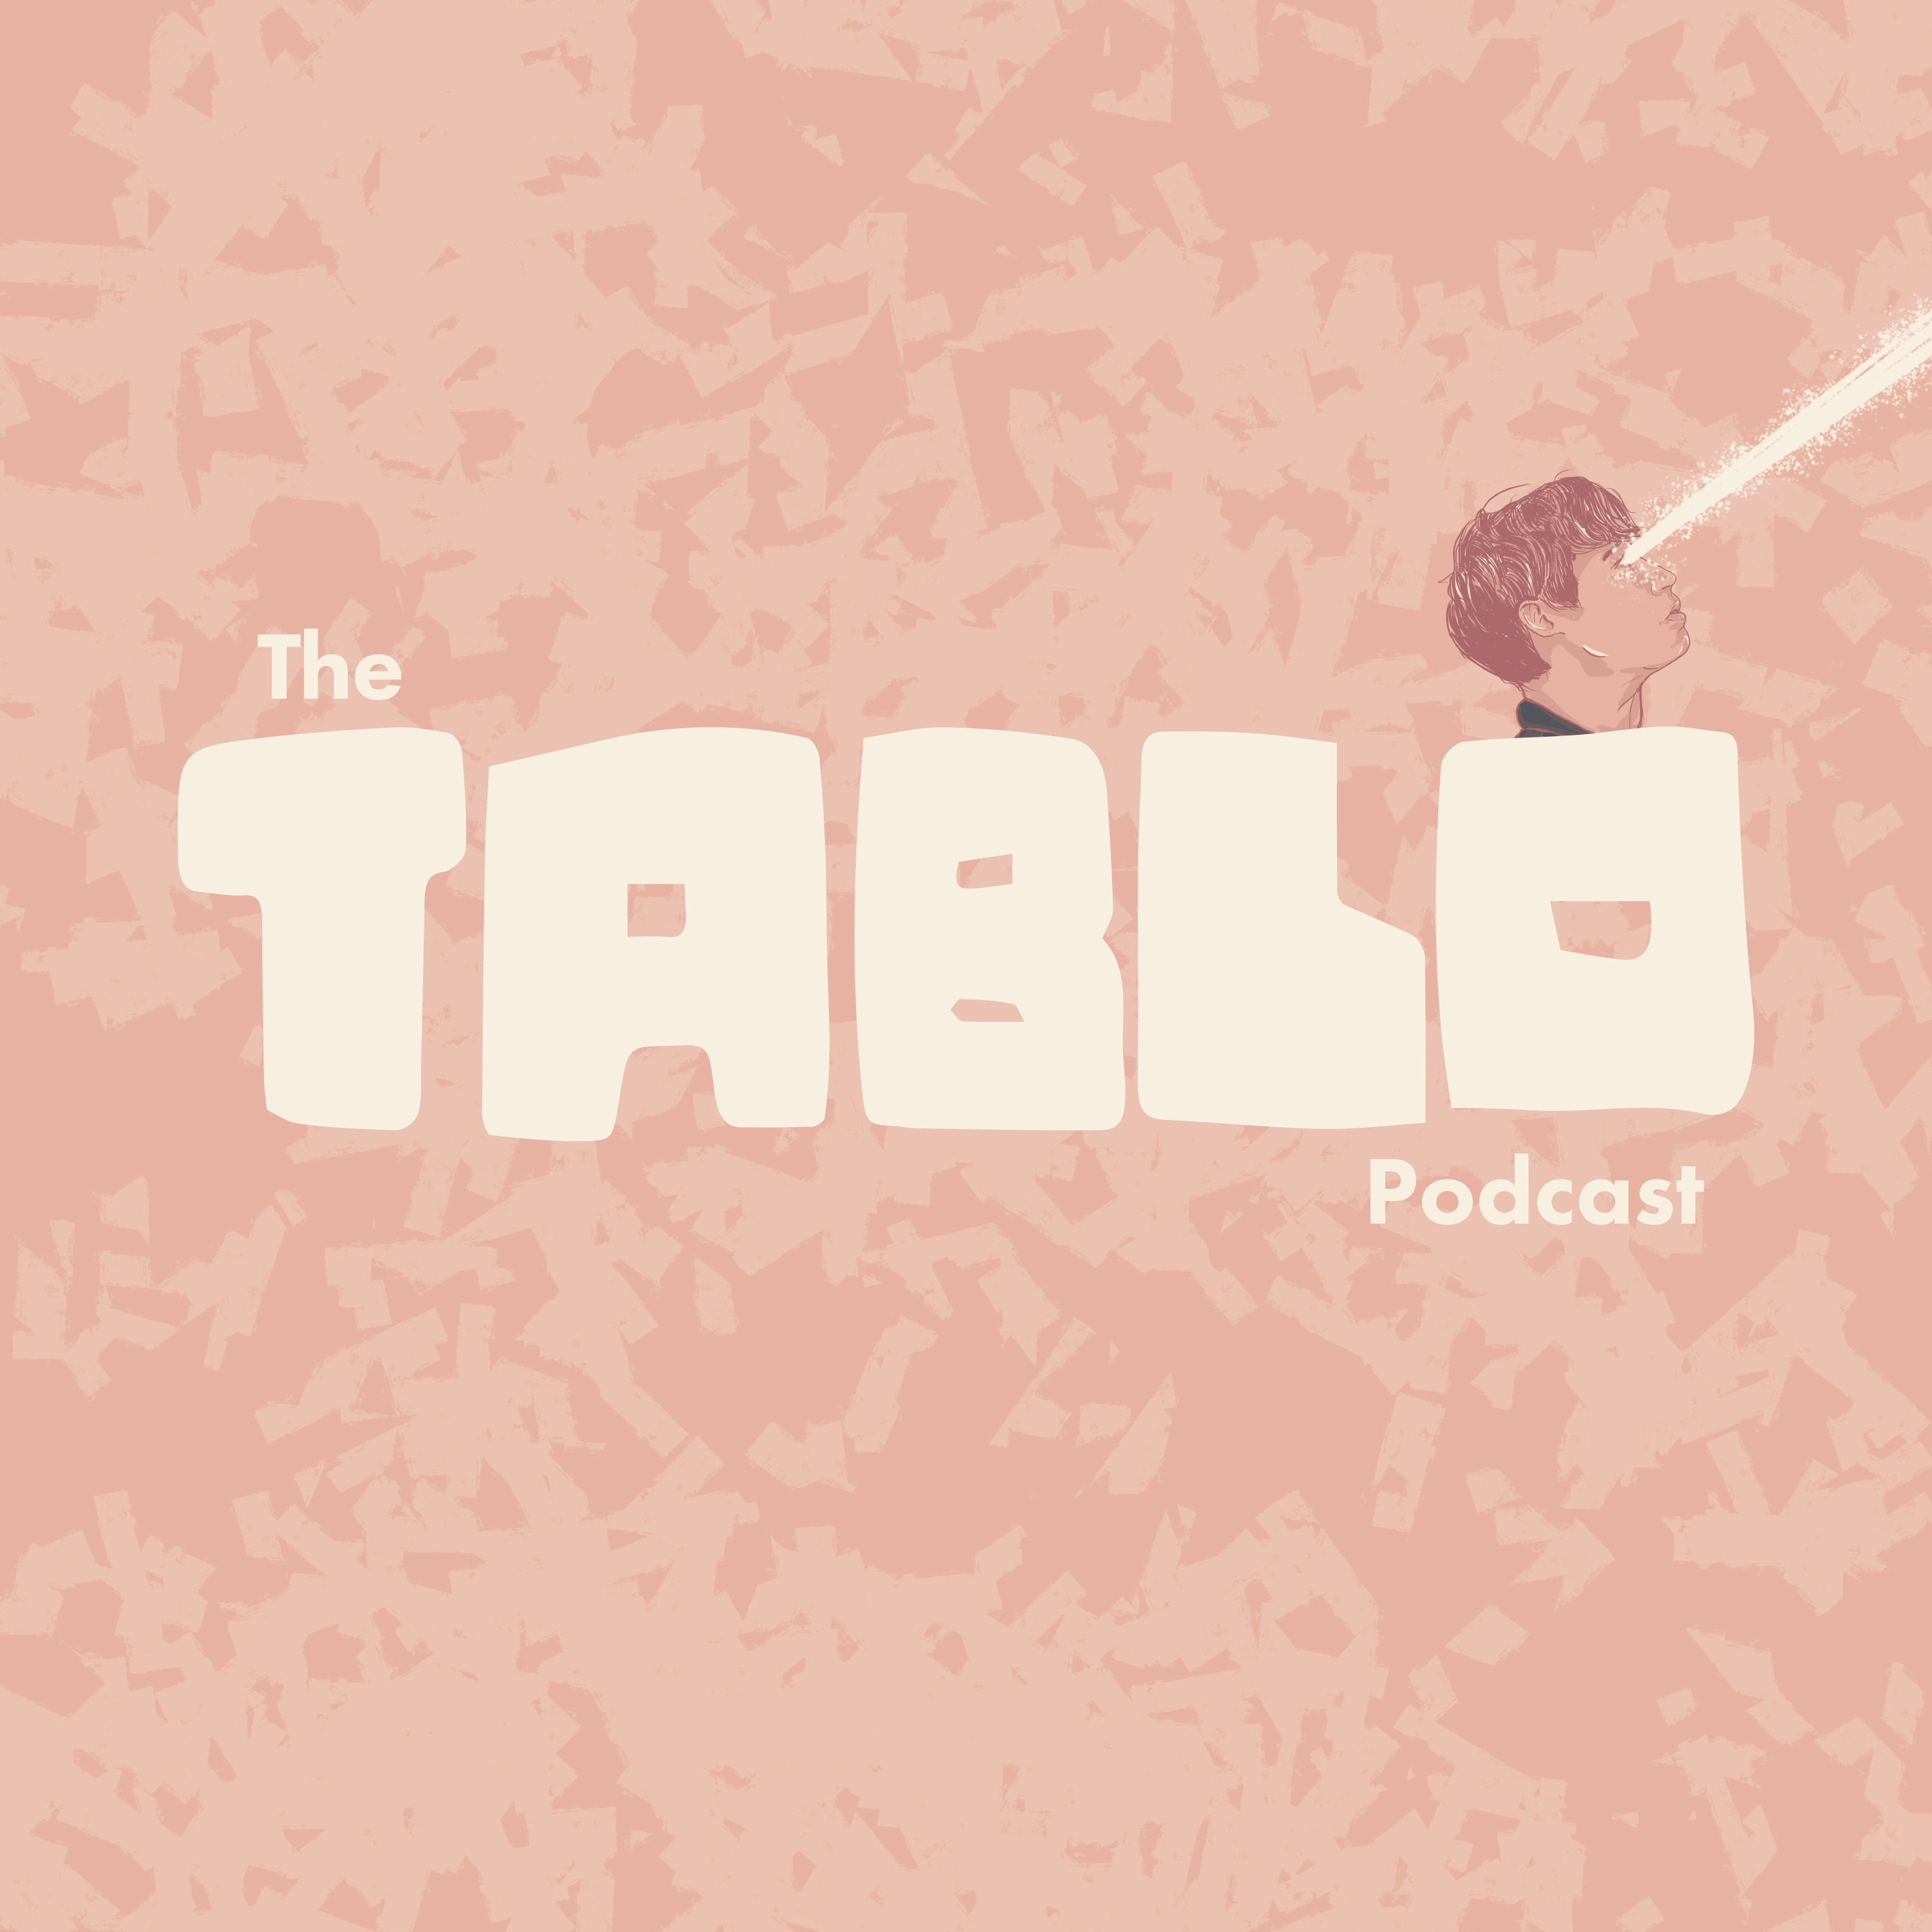 Introducing The Tablo Podcast